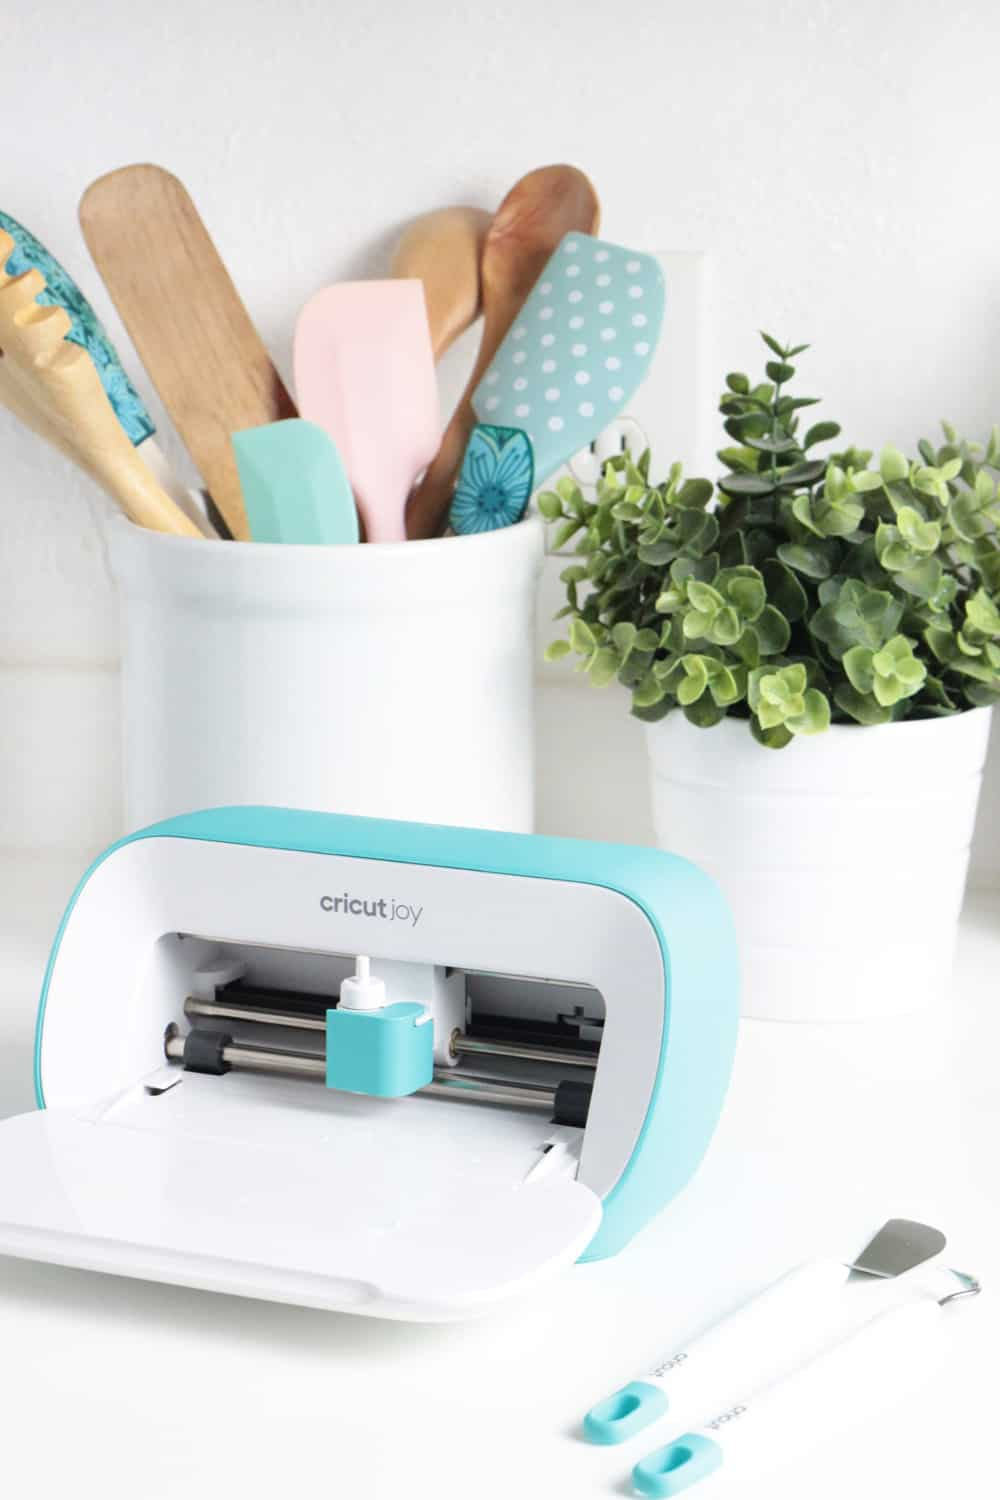 Cricut Joy on kitchen counter in front of plant and utensil holder